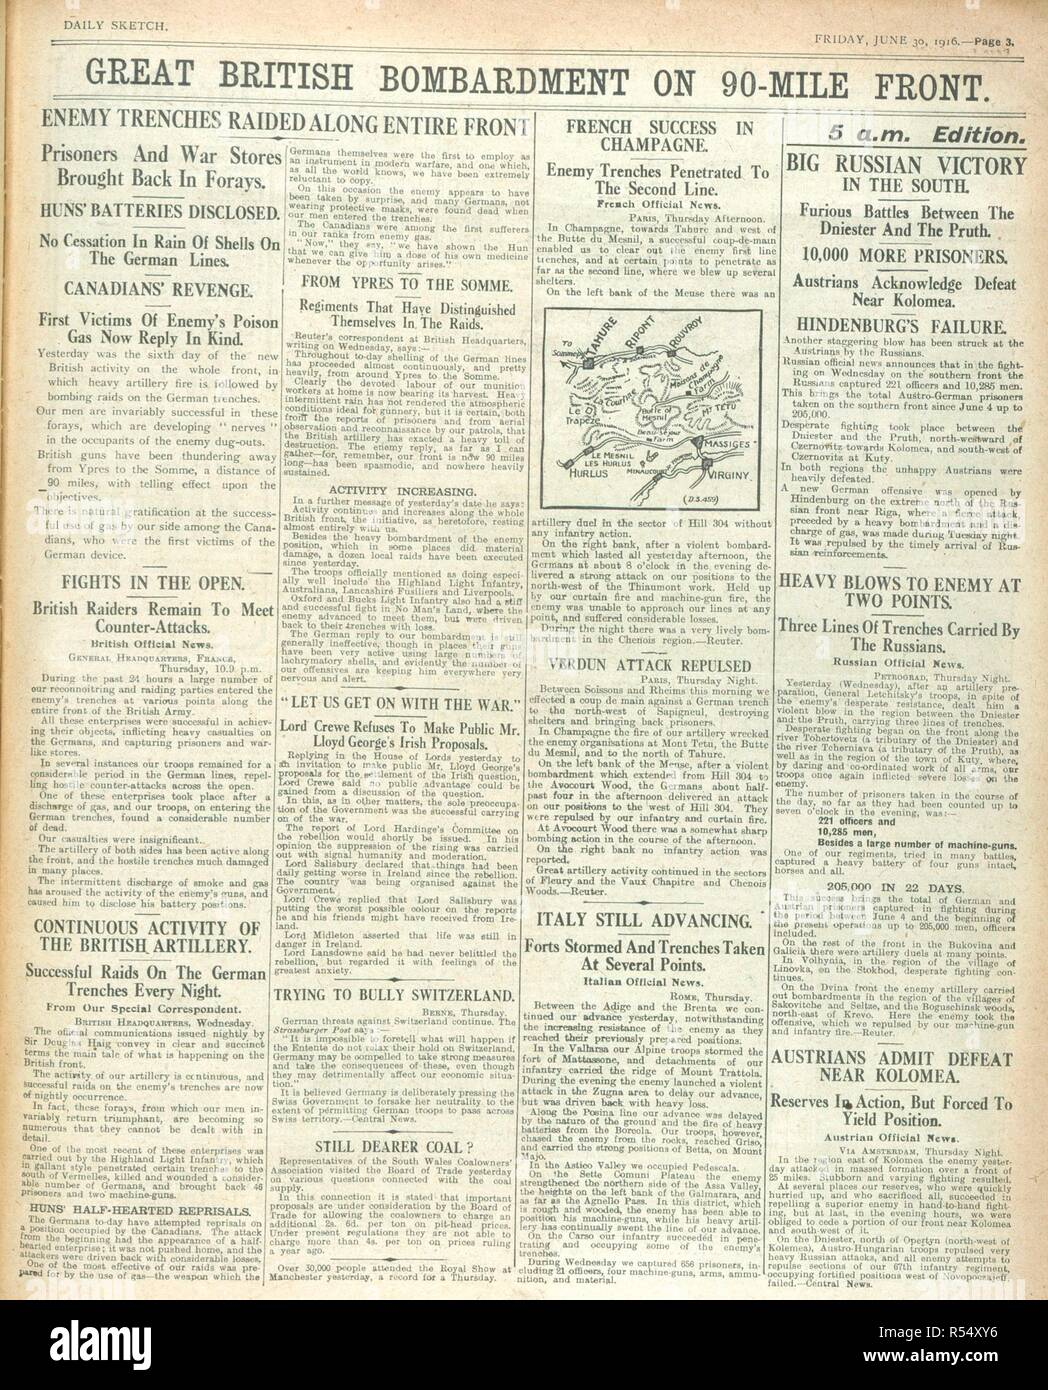 'Great British bombardment on 90 mile front'. A newspaper report during the First World War. The Sketch. London, 1916. Source: The Sketch, 30 June 1916, page 3. Stock Photo